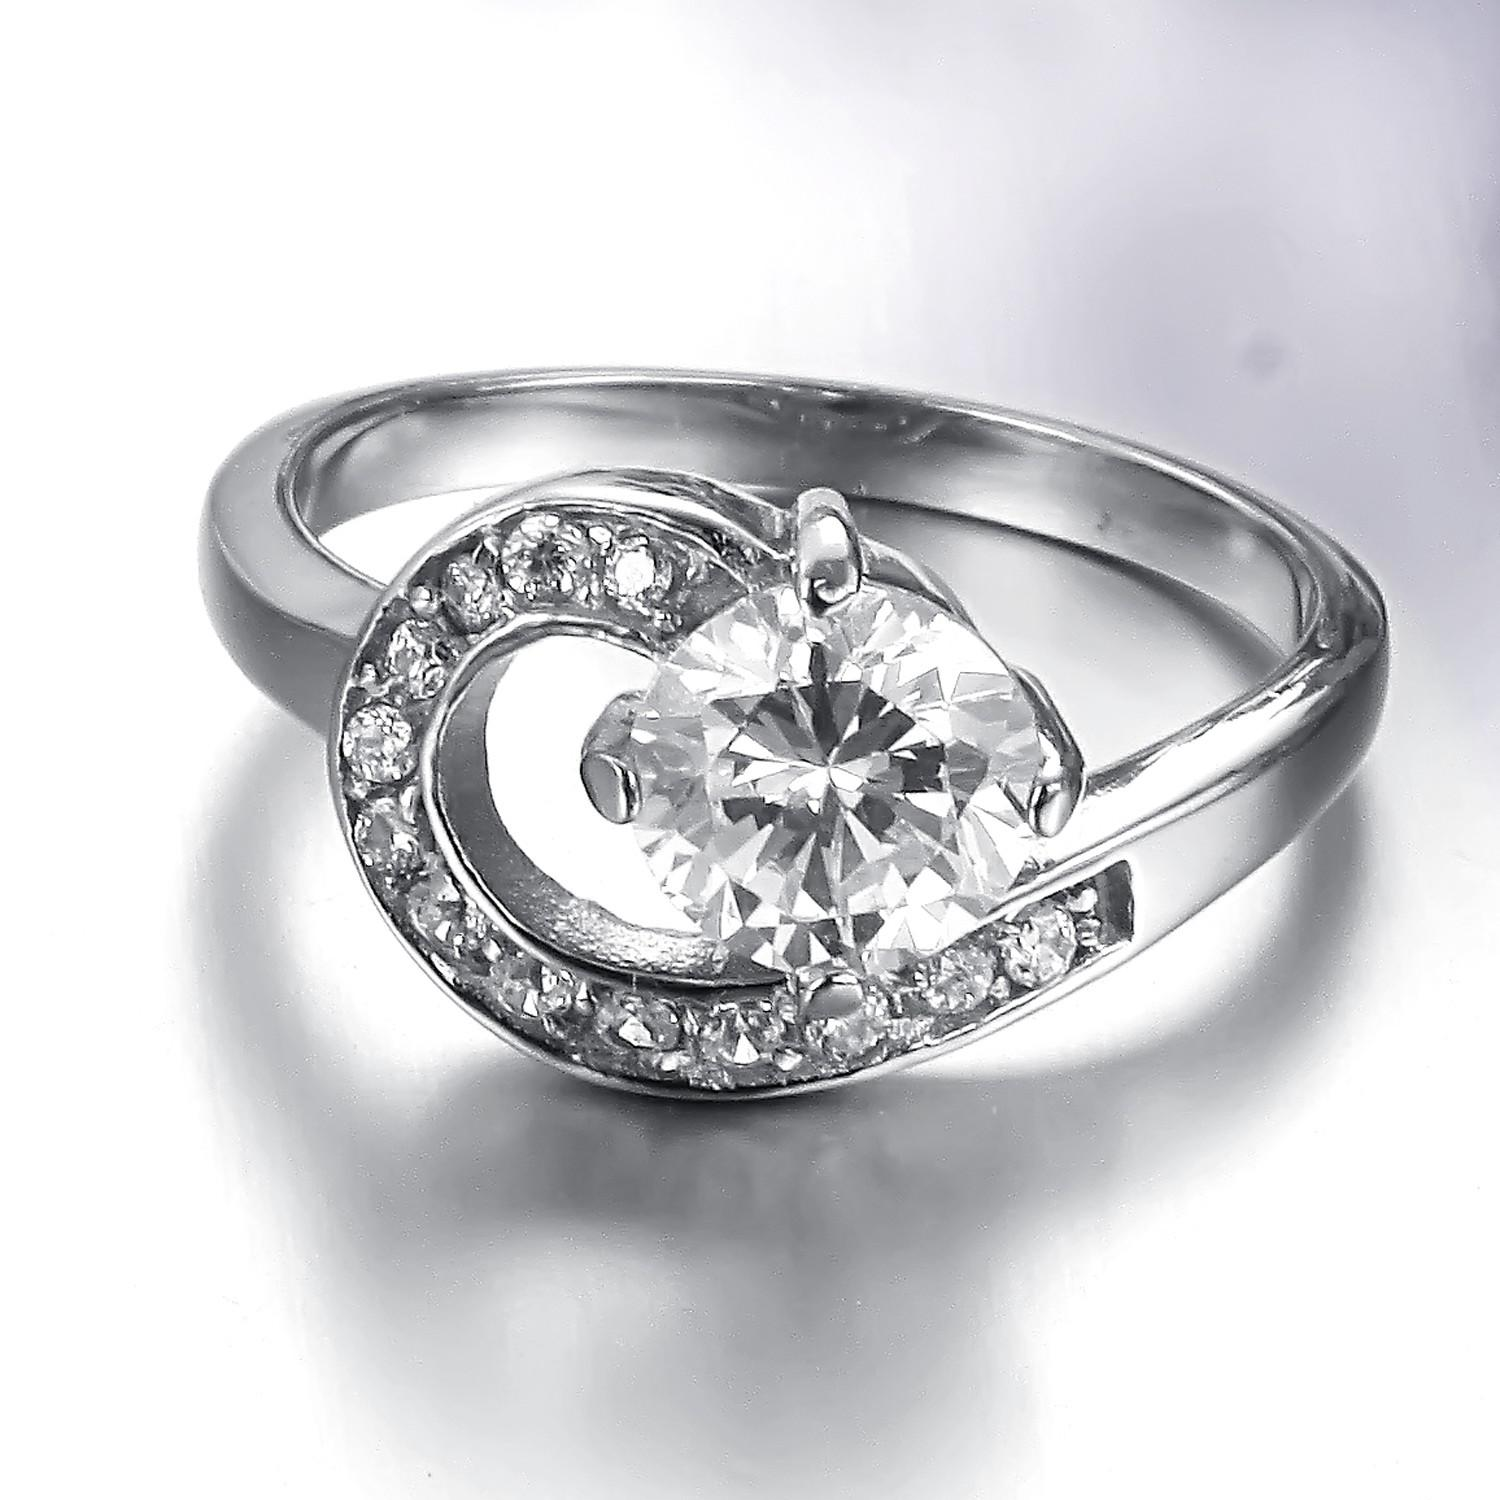 Wedding Rings Pictures Crystal Wedding Ring